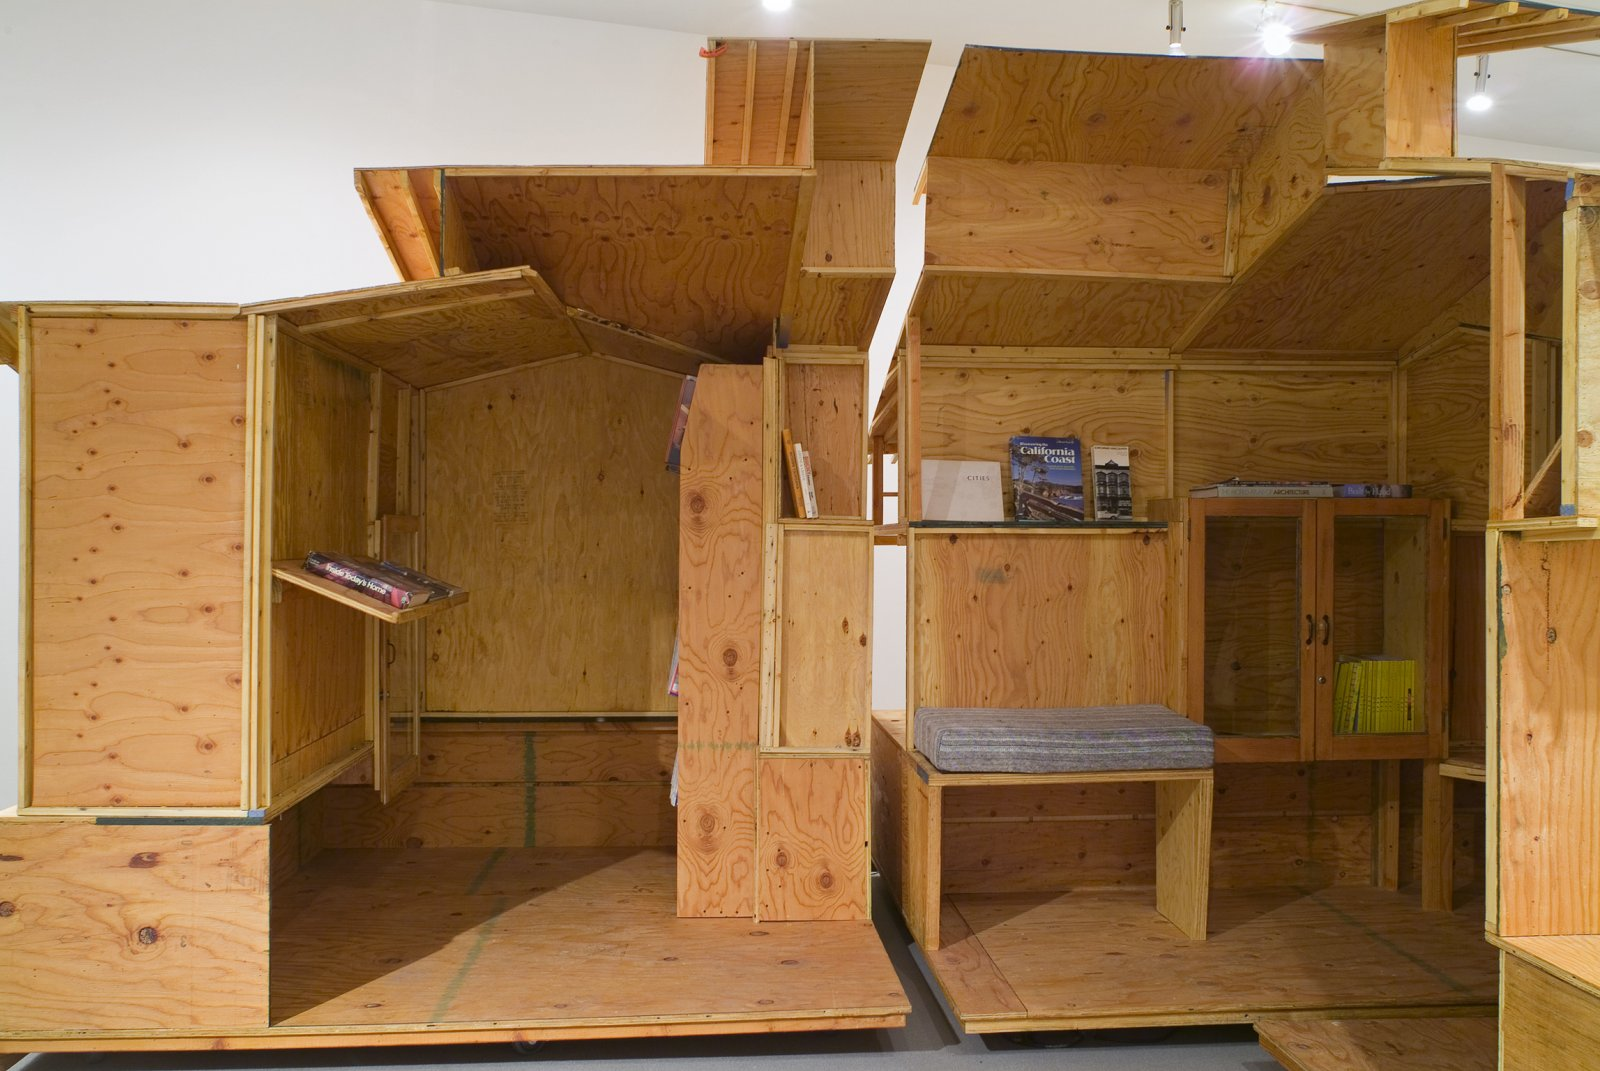 Brian Jungen,Arts and Crafts Book Depository / CappStreet Project 2004(detail), 2004,architectural model (scale of Greene and Greene's Gamble House) made of plywood sectioned into 4 quadrants, locking castors, bookshelves, 2 framed glass cabinets with electrical source and lighting unit, hand-made fabric pillows for seating benches, video monitor, ongoing accumulation of library inventory of magazines, journals, books and videos, 108 x 192 x 252 in. (274 x 488 x 640 cm)